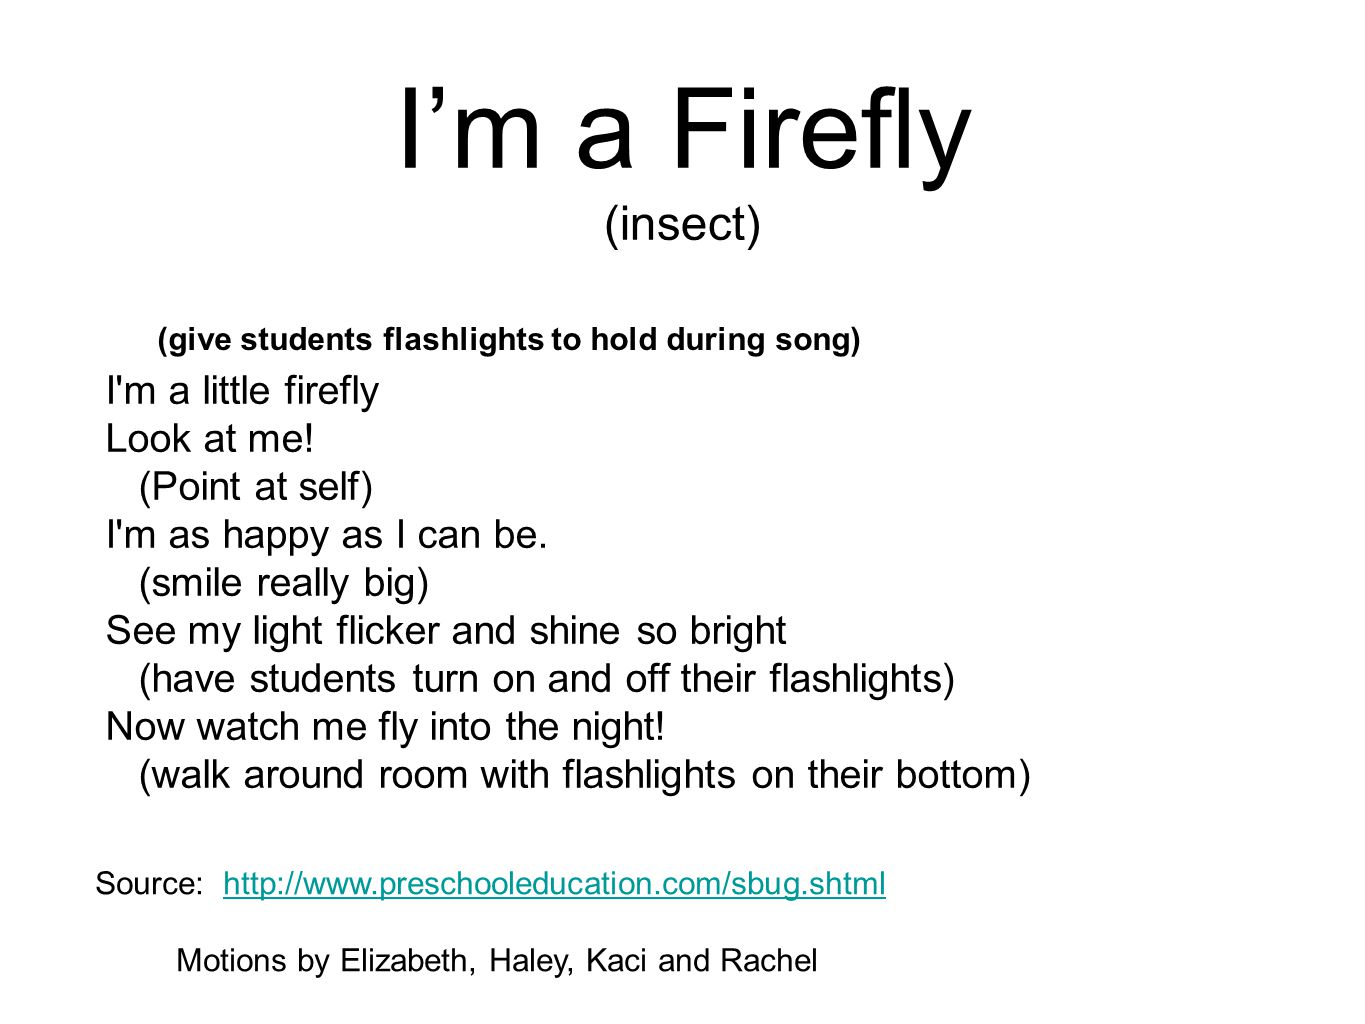 I'm a Firefly (insect) I'm a little firefly Look at me! (Point at self) I'm as happy as I can be. (smile really big) See my light flicker and shine so